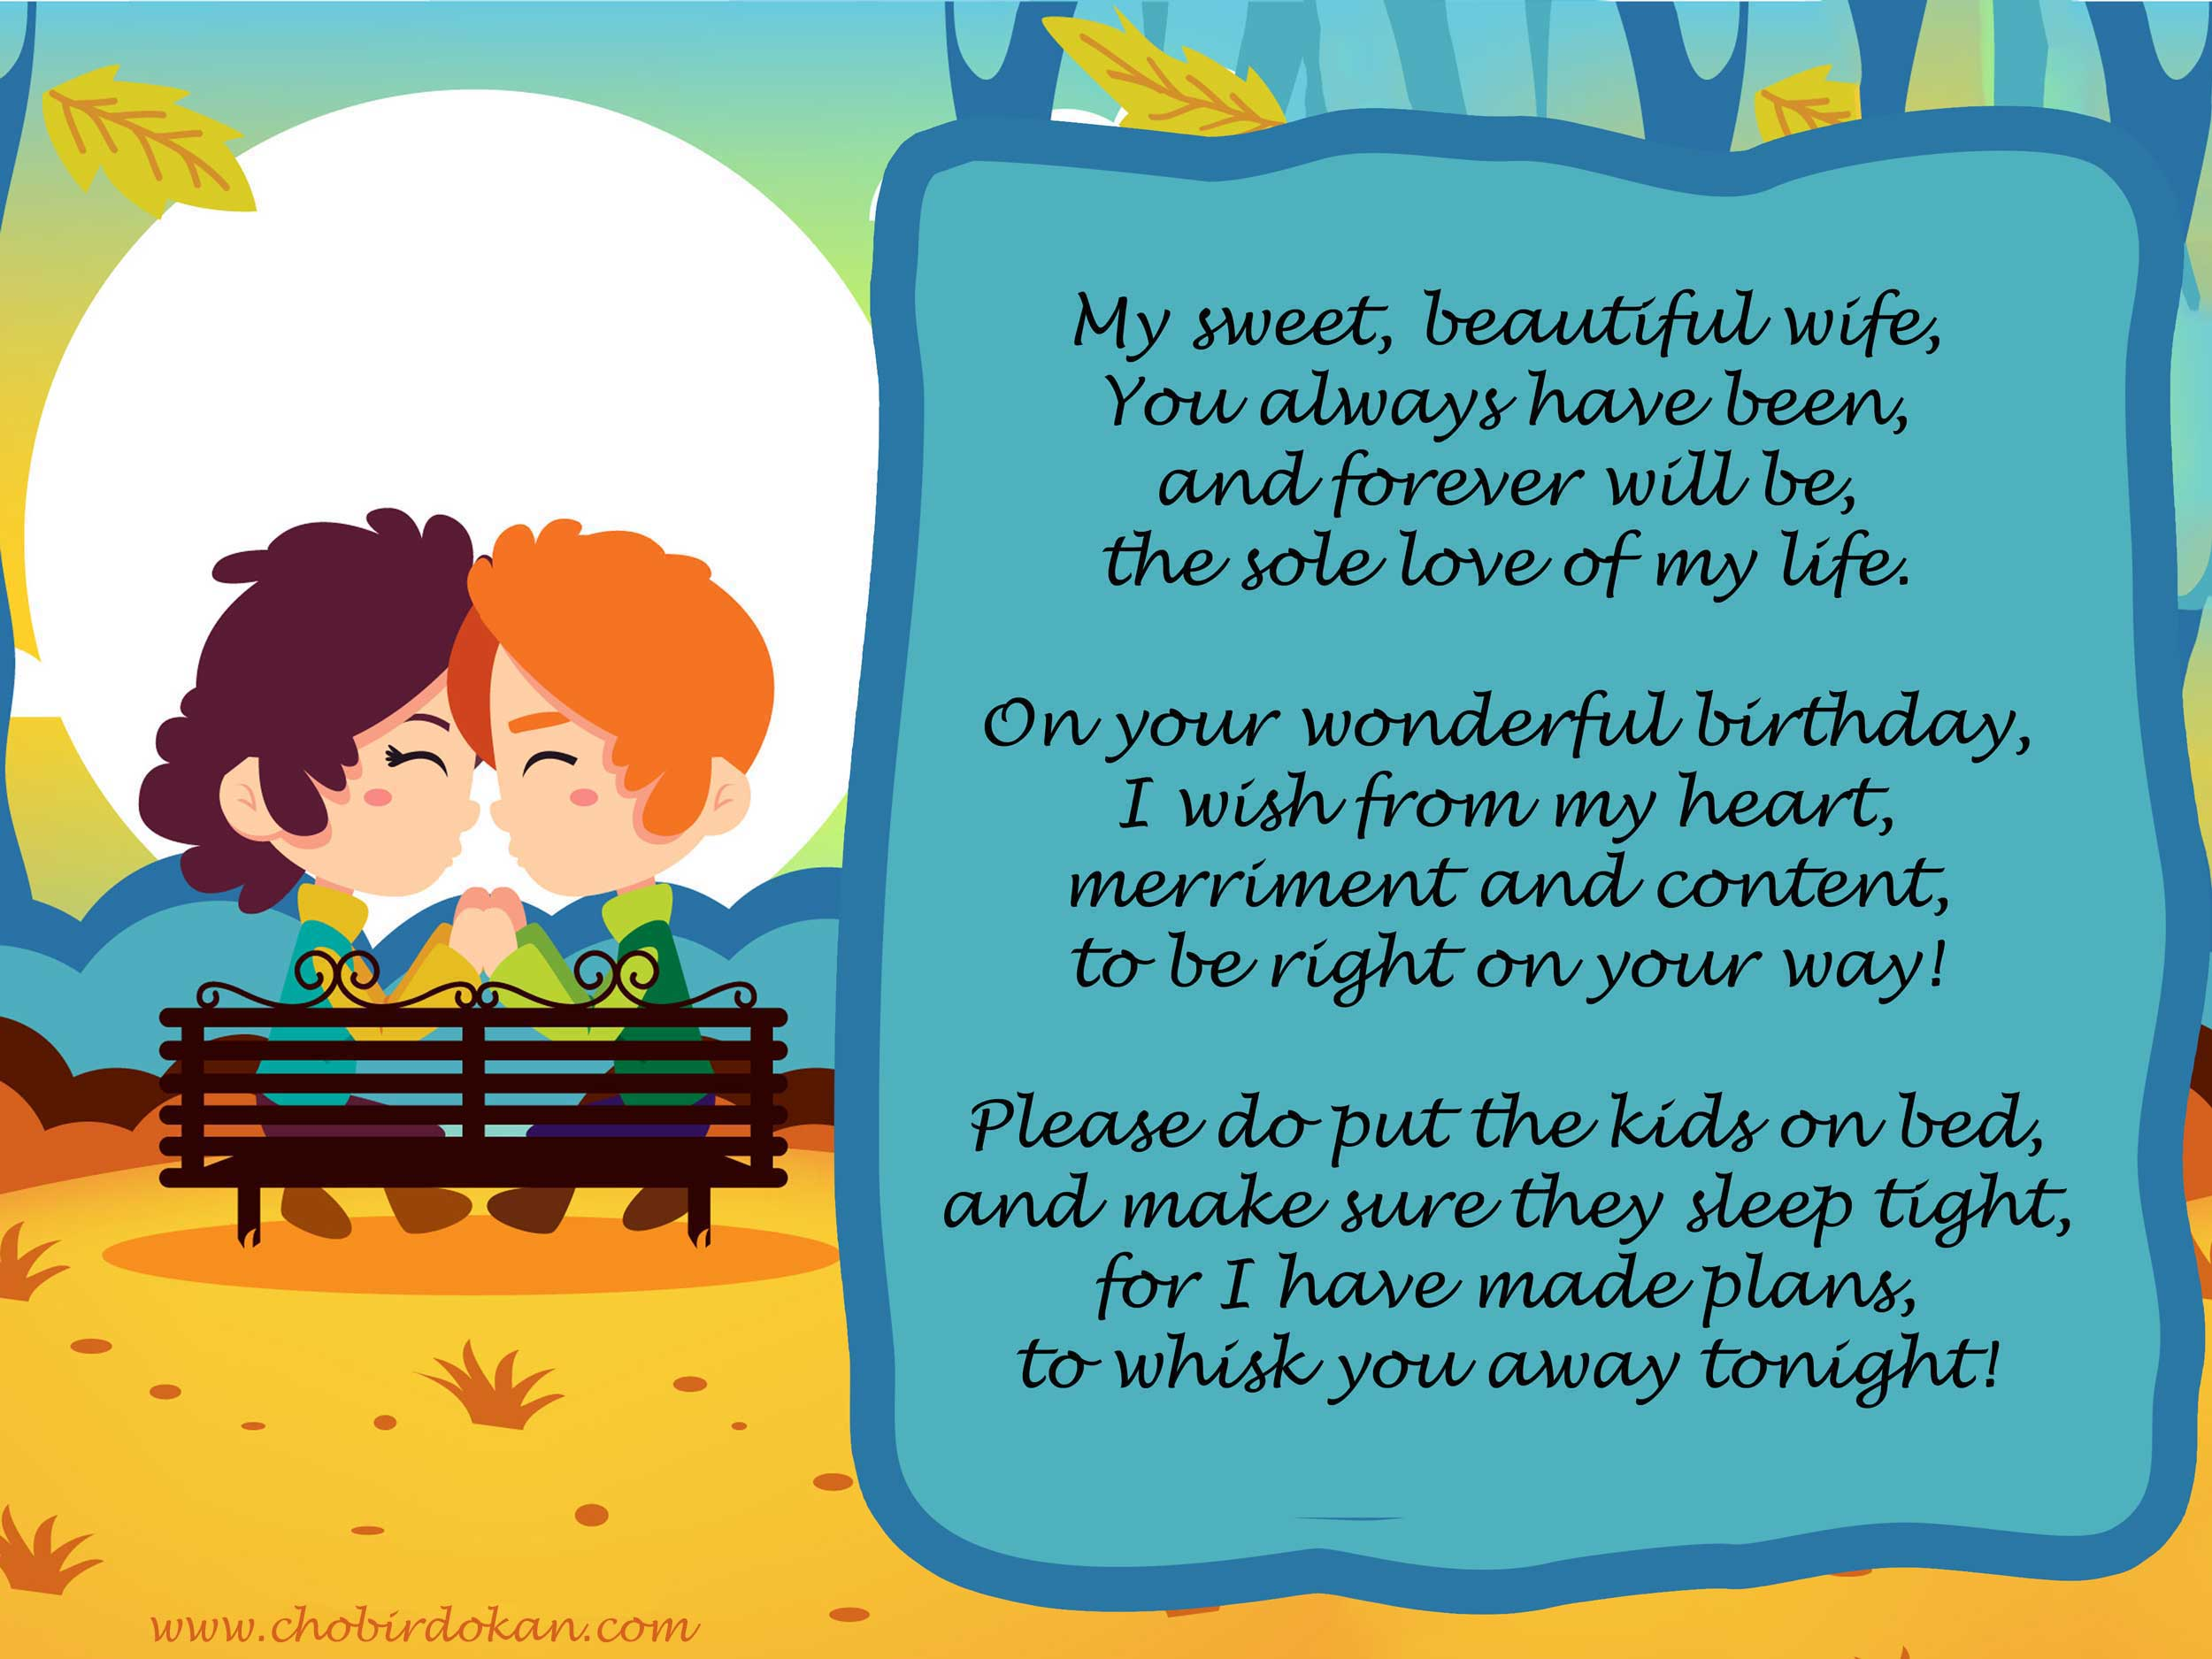 Love Poems For Wife Or Girlfriend: Romantic Happy Birthday Poems For Her -For Girlfriend Or